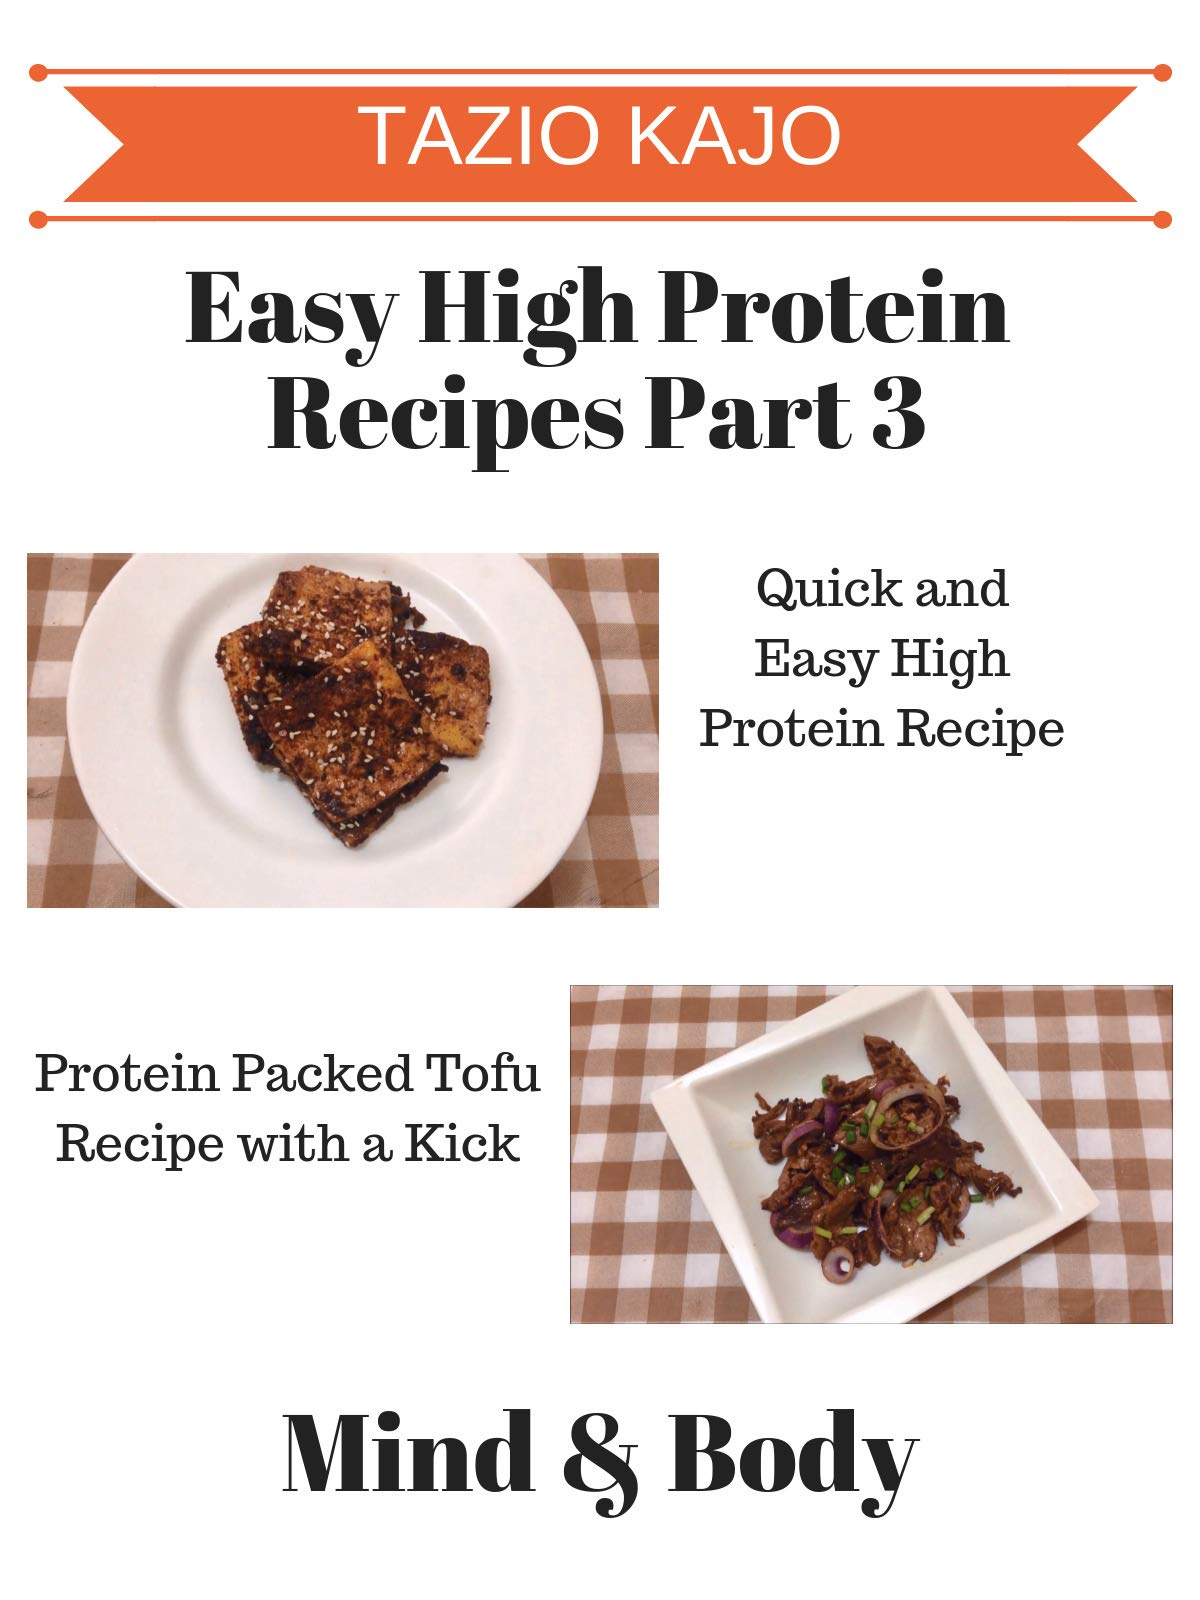 Easy High Protein Recipes Part 3